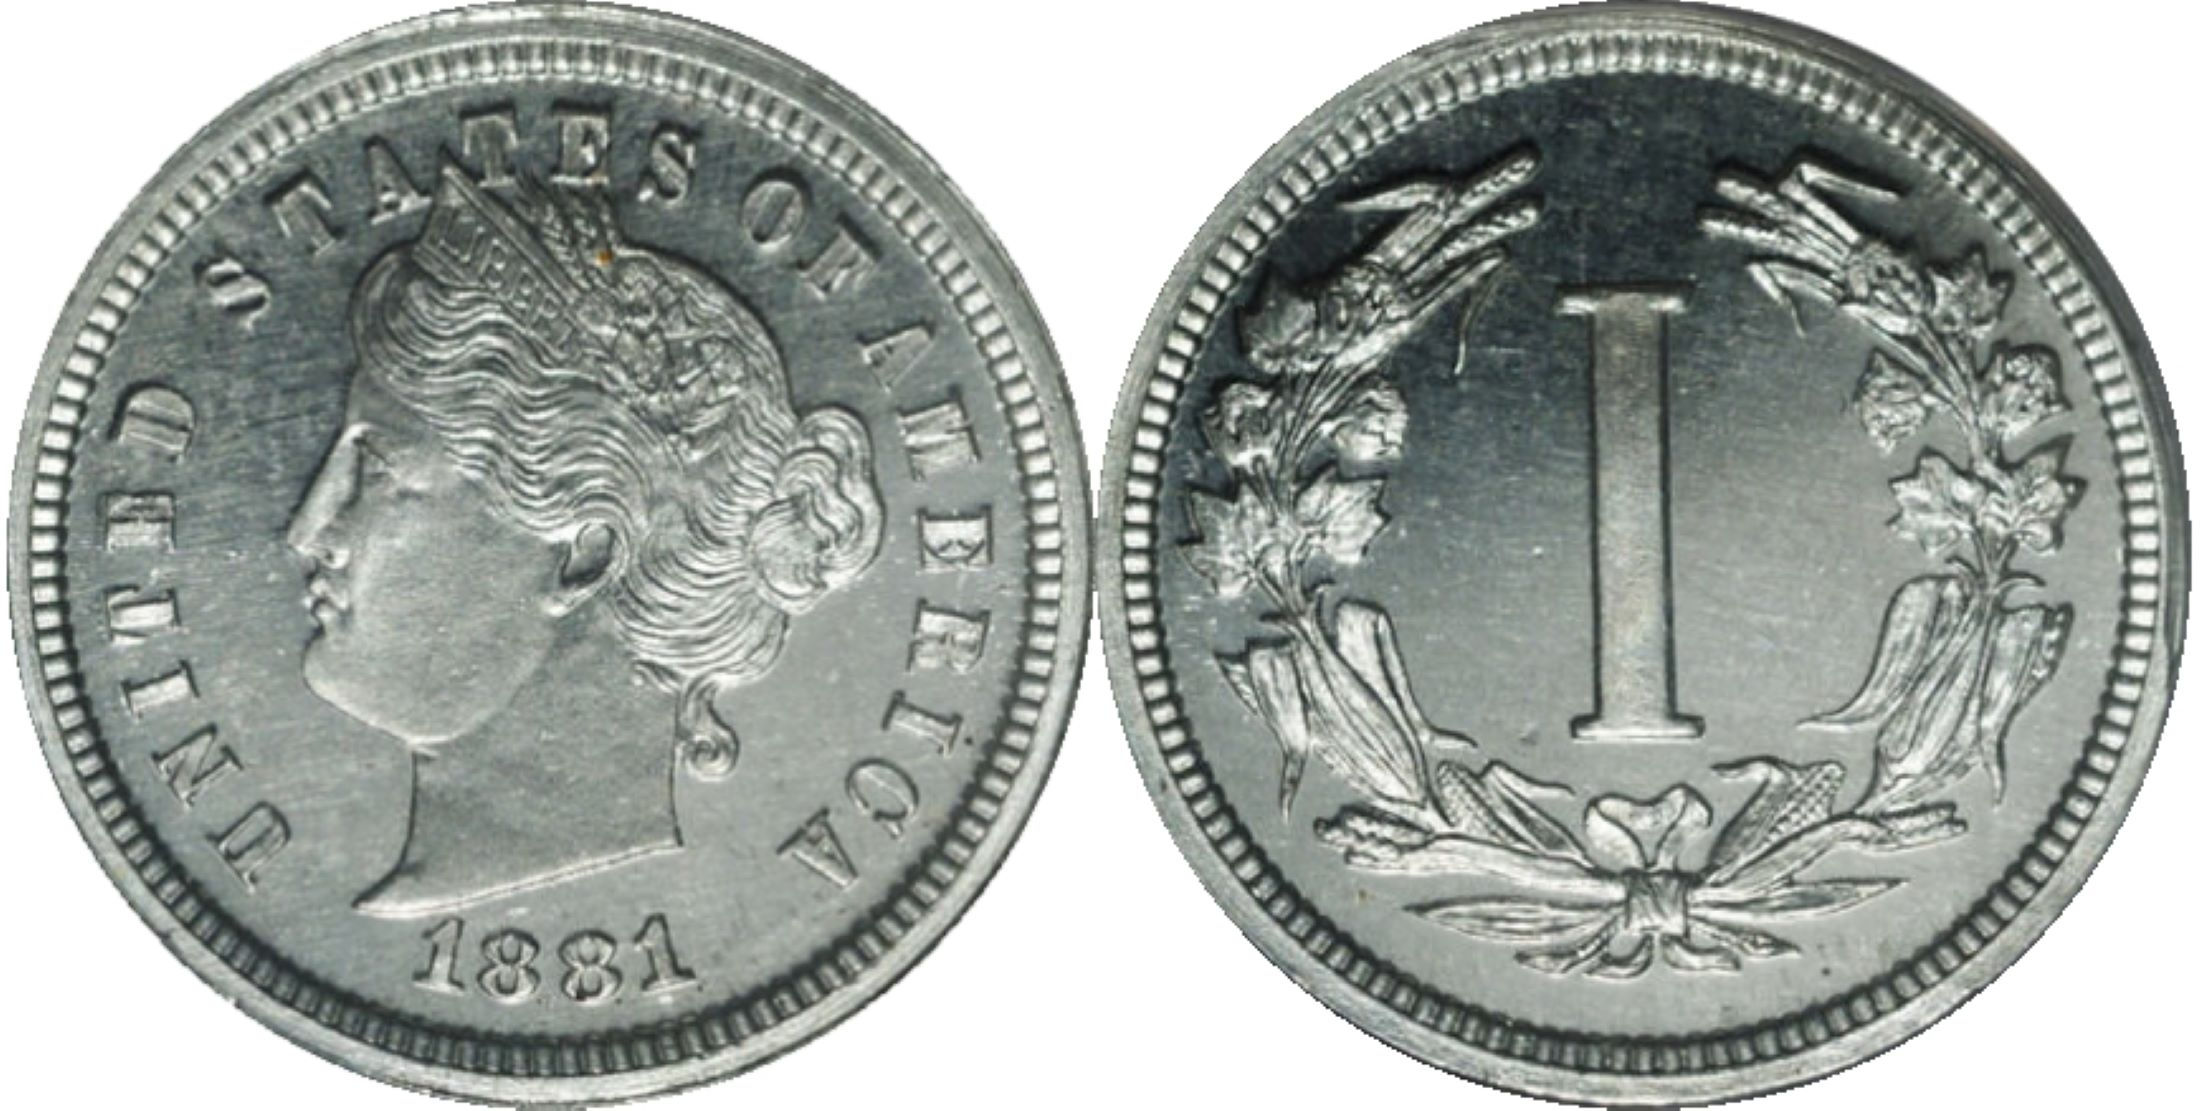 """PCGS PR65CAM<BR>Image courtesy of <a href=""""http://www.ha.com"""" target=""""_blank"""">Heritage Numismatic Auctions</a>"""